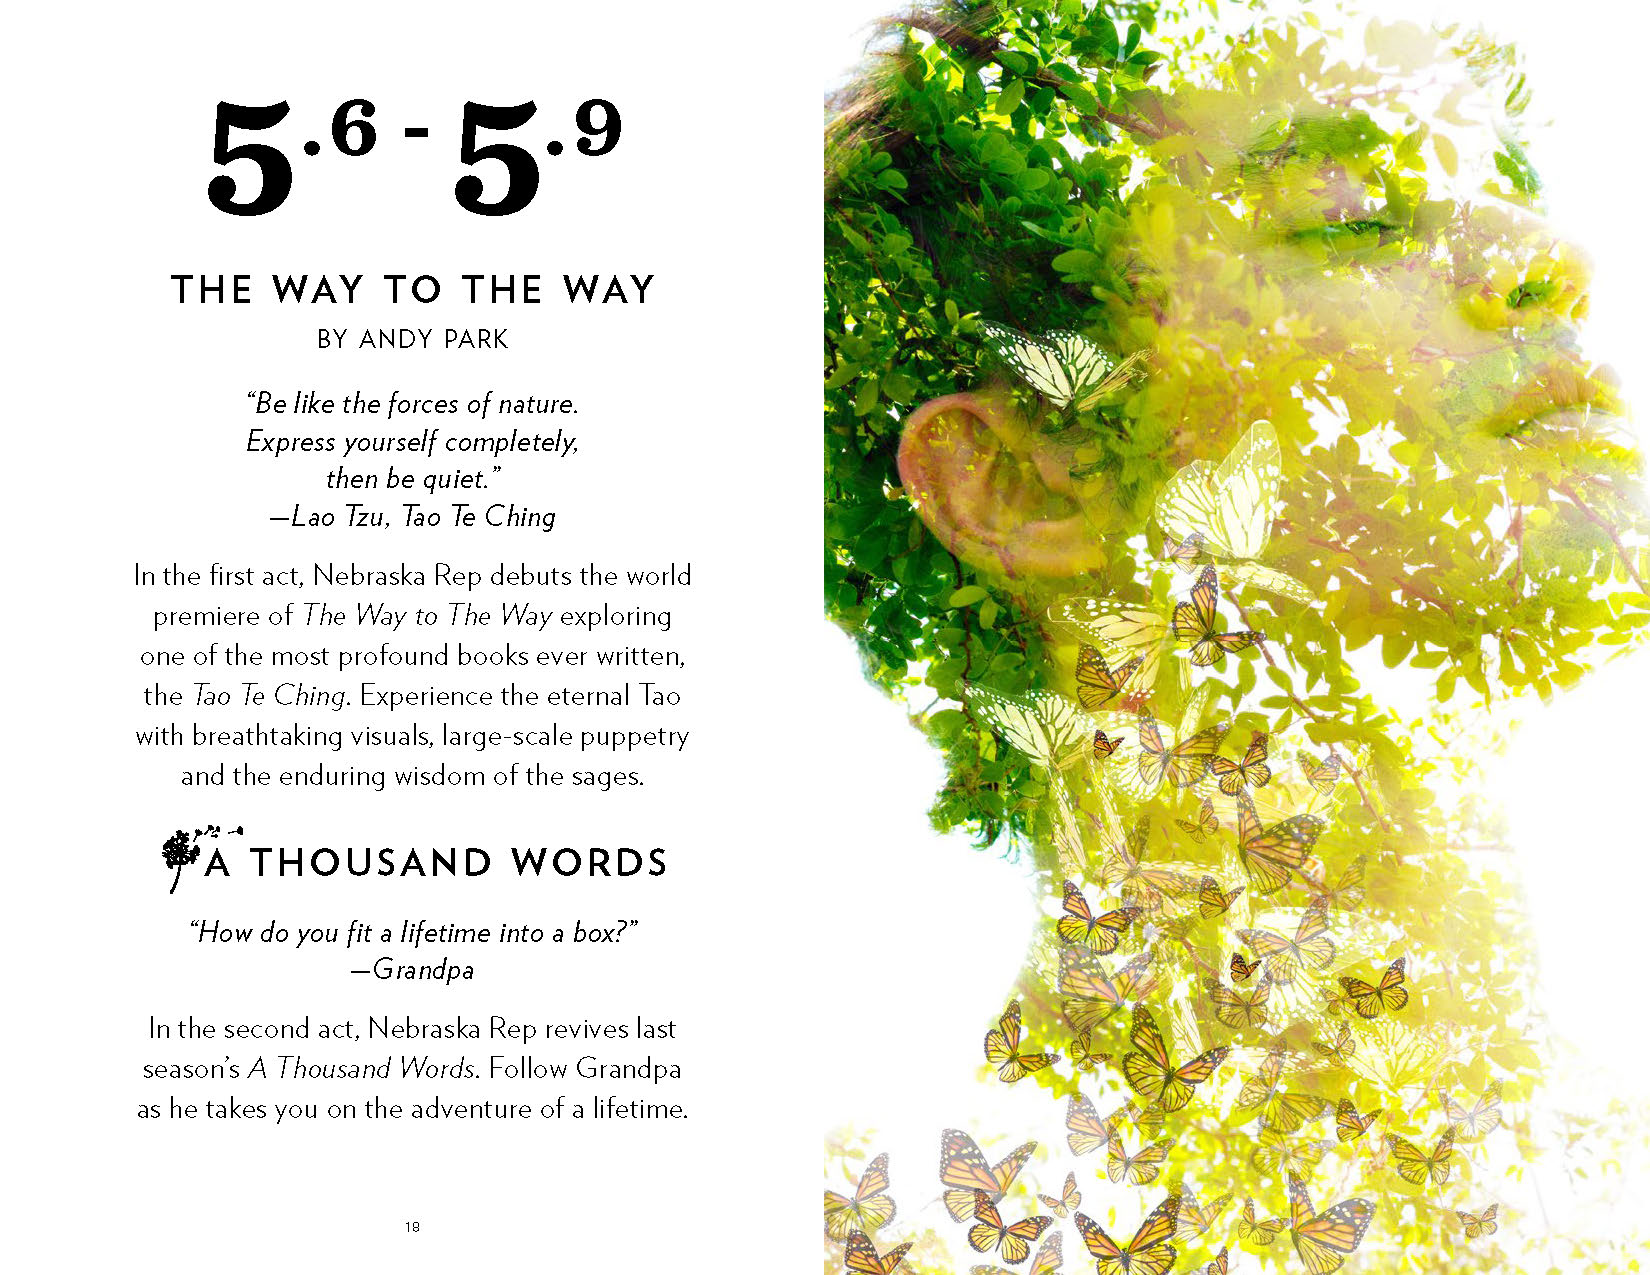 A spread from a program. On the left page are the dates '5/6–5/9' and the title of the play, 'The Way to the Way'. On the right is an image of a man's head from the neck up, wearing a peaceful expression and overlaid with bright green leaves and yellow butterflies.